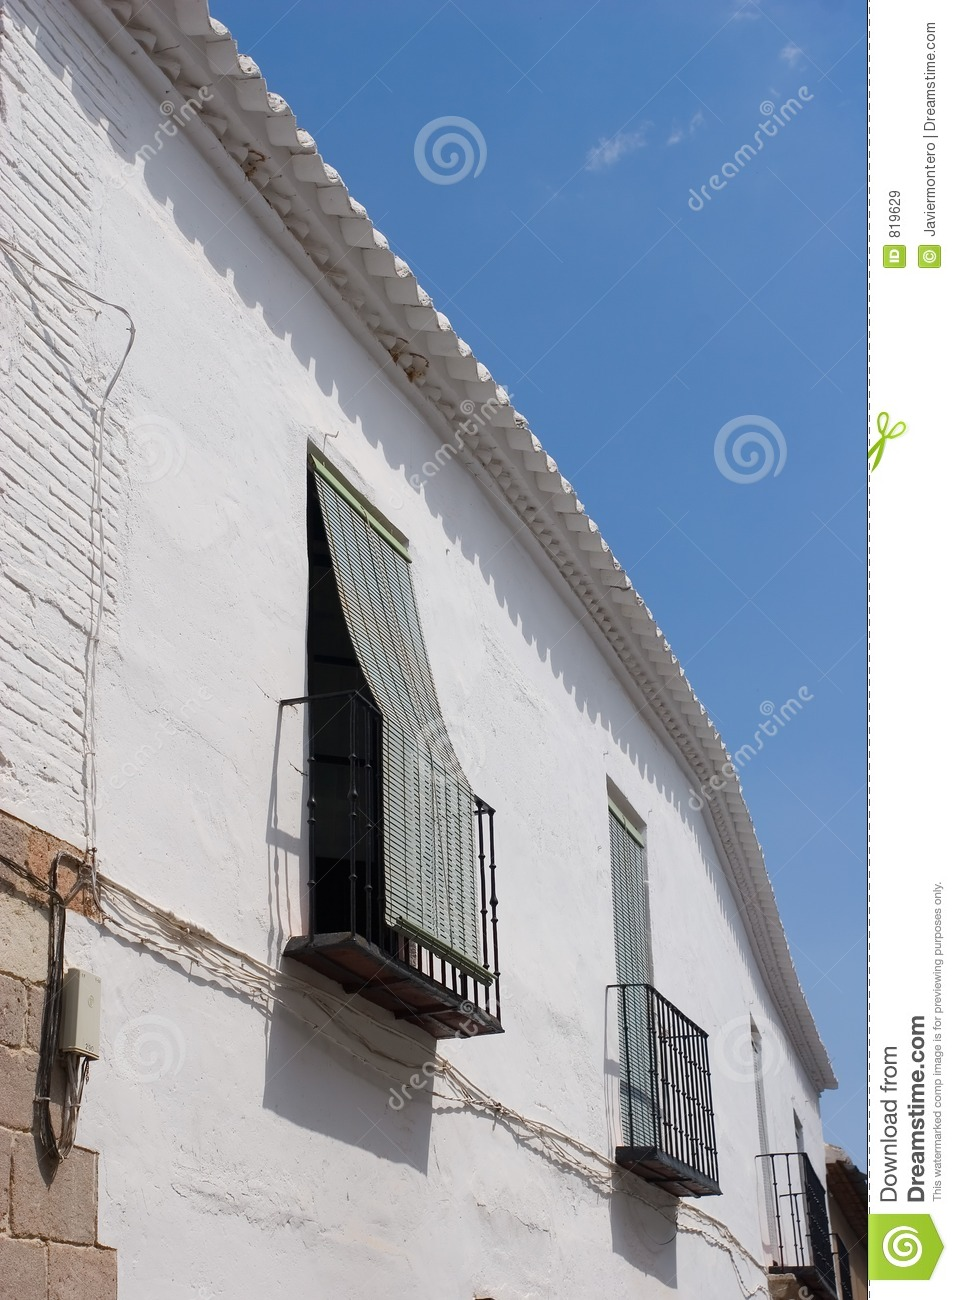 Balcony royalty free stock images image 819629 for Balcony in spanish